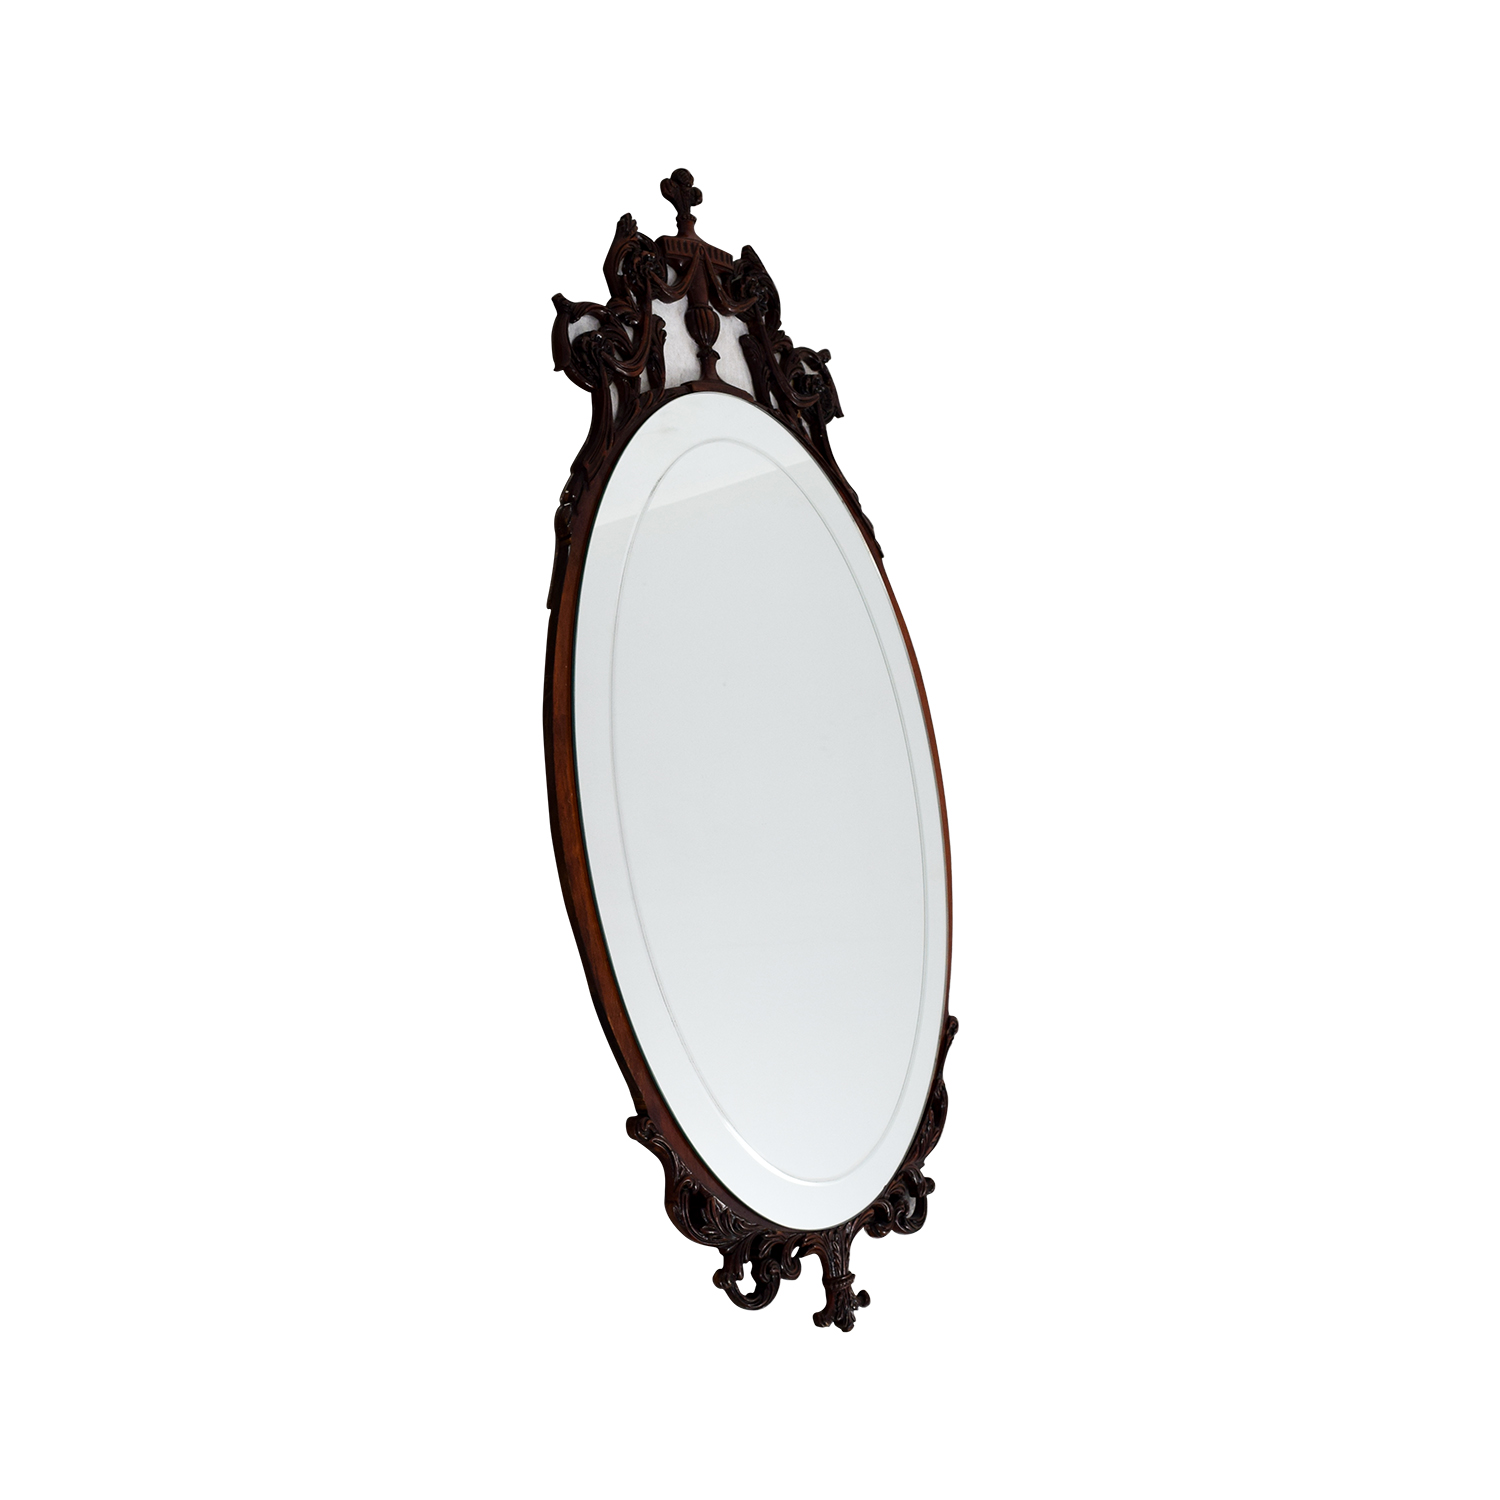 Antique 1940s Flame Mahogany Wood Oval Mirror